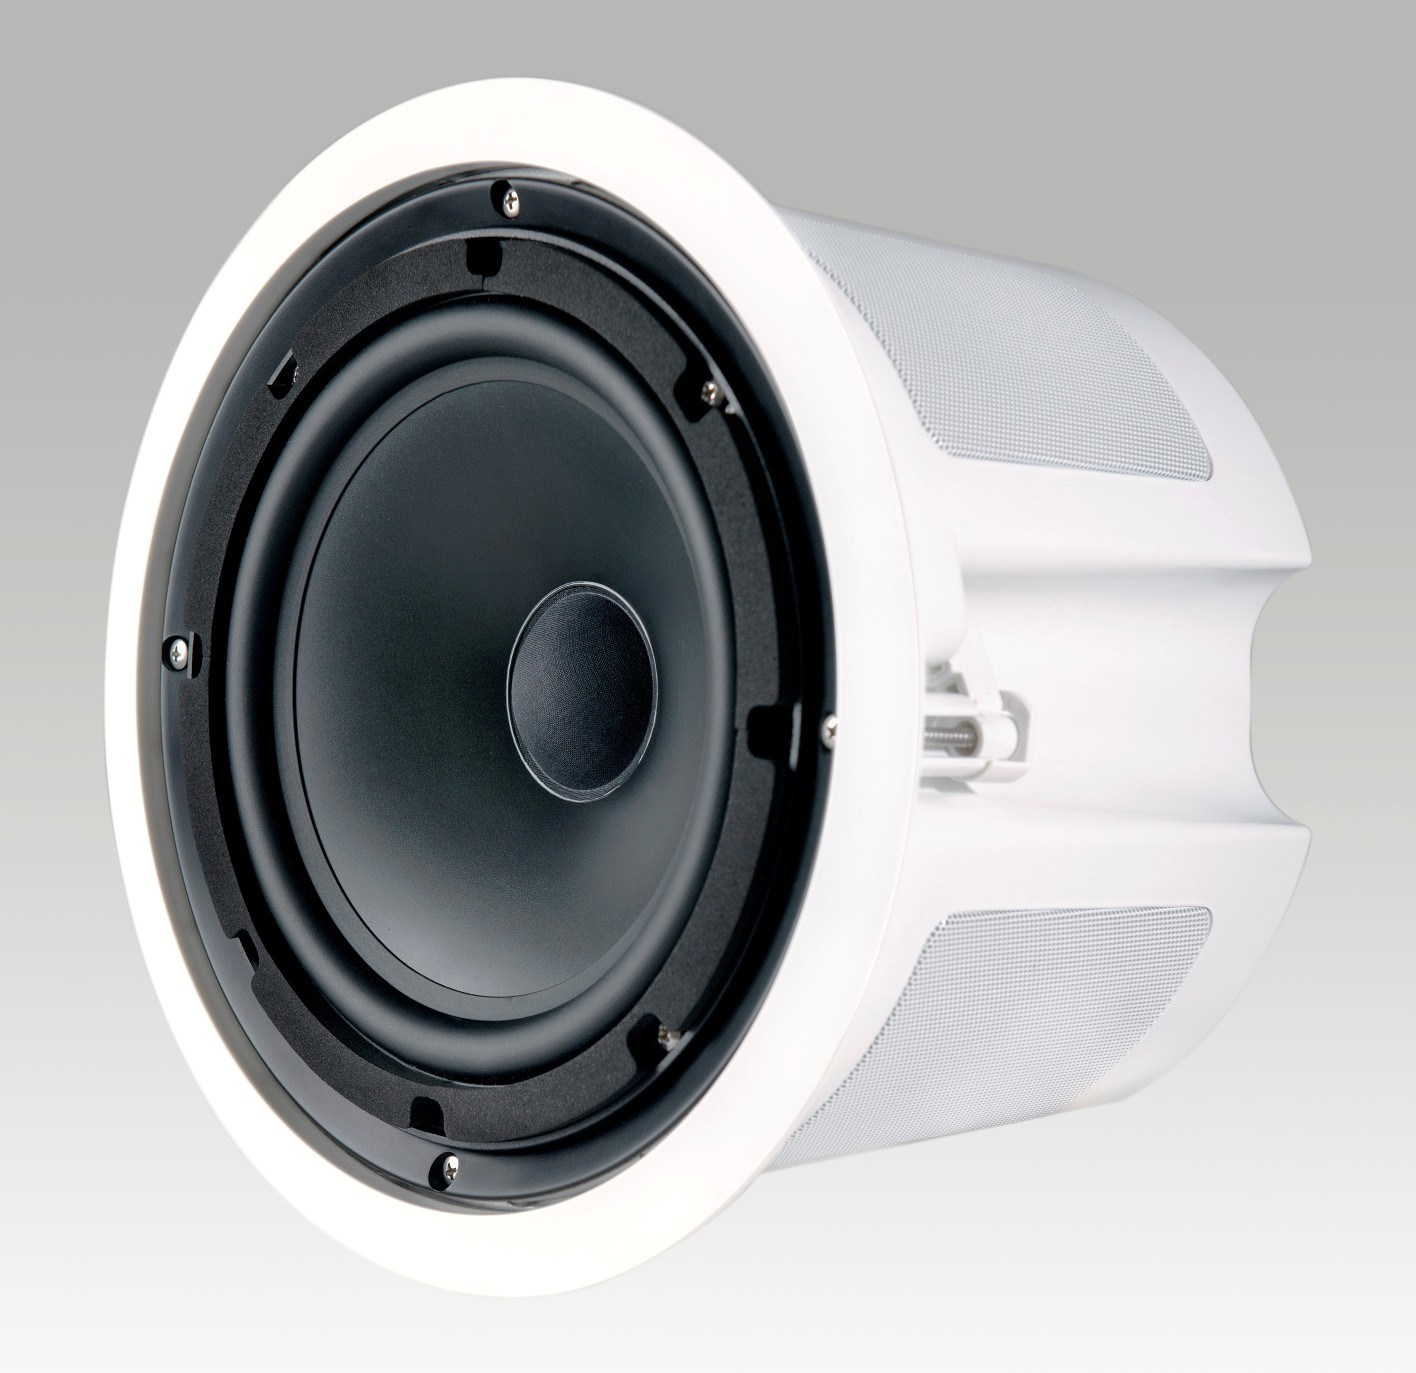 50207357 furthermore Krix In Ceiling Speakers Stratospherix Outdoor as well 4773529 besides Ntn additionally 204303556. on heating and cooling fans